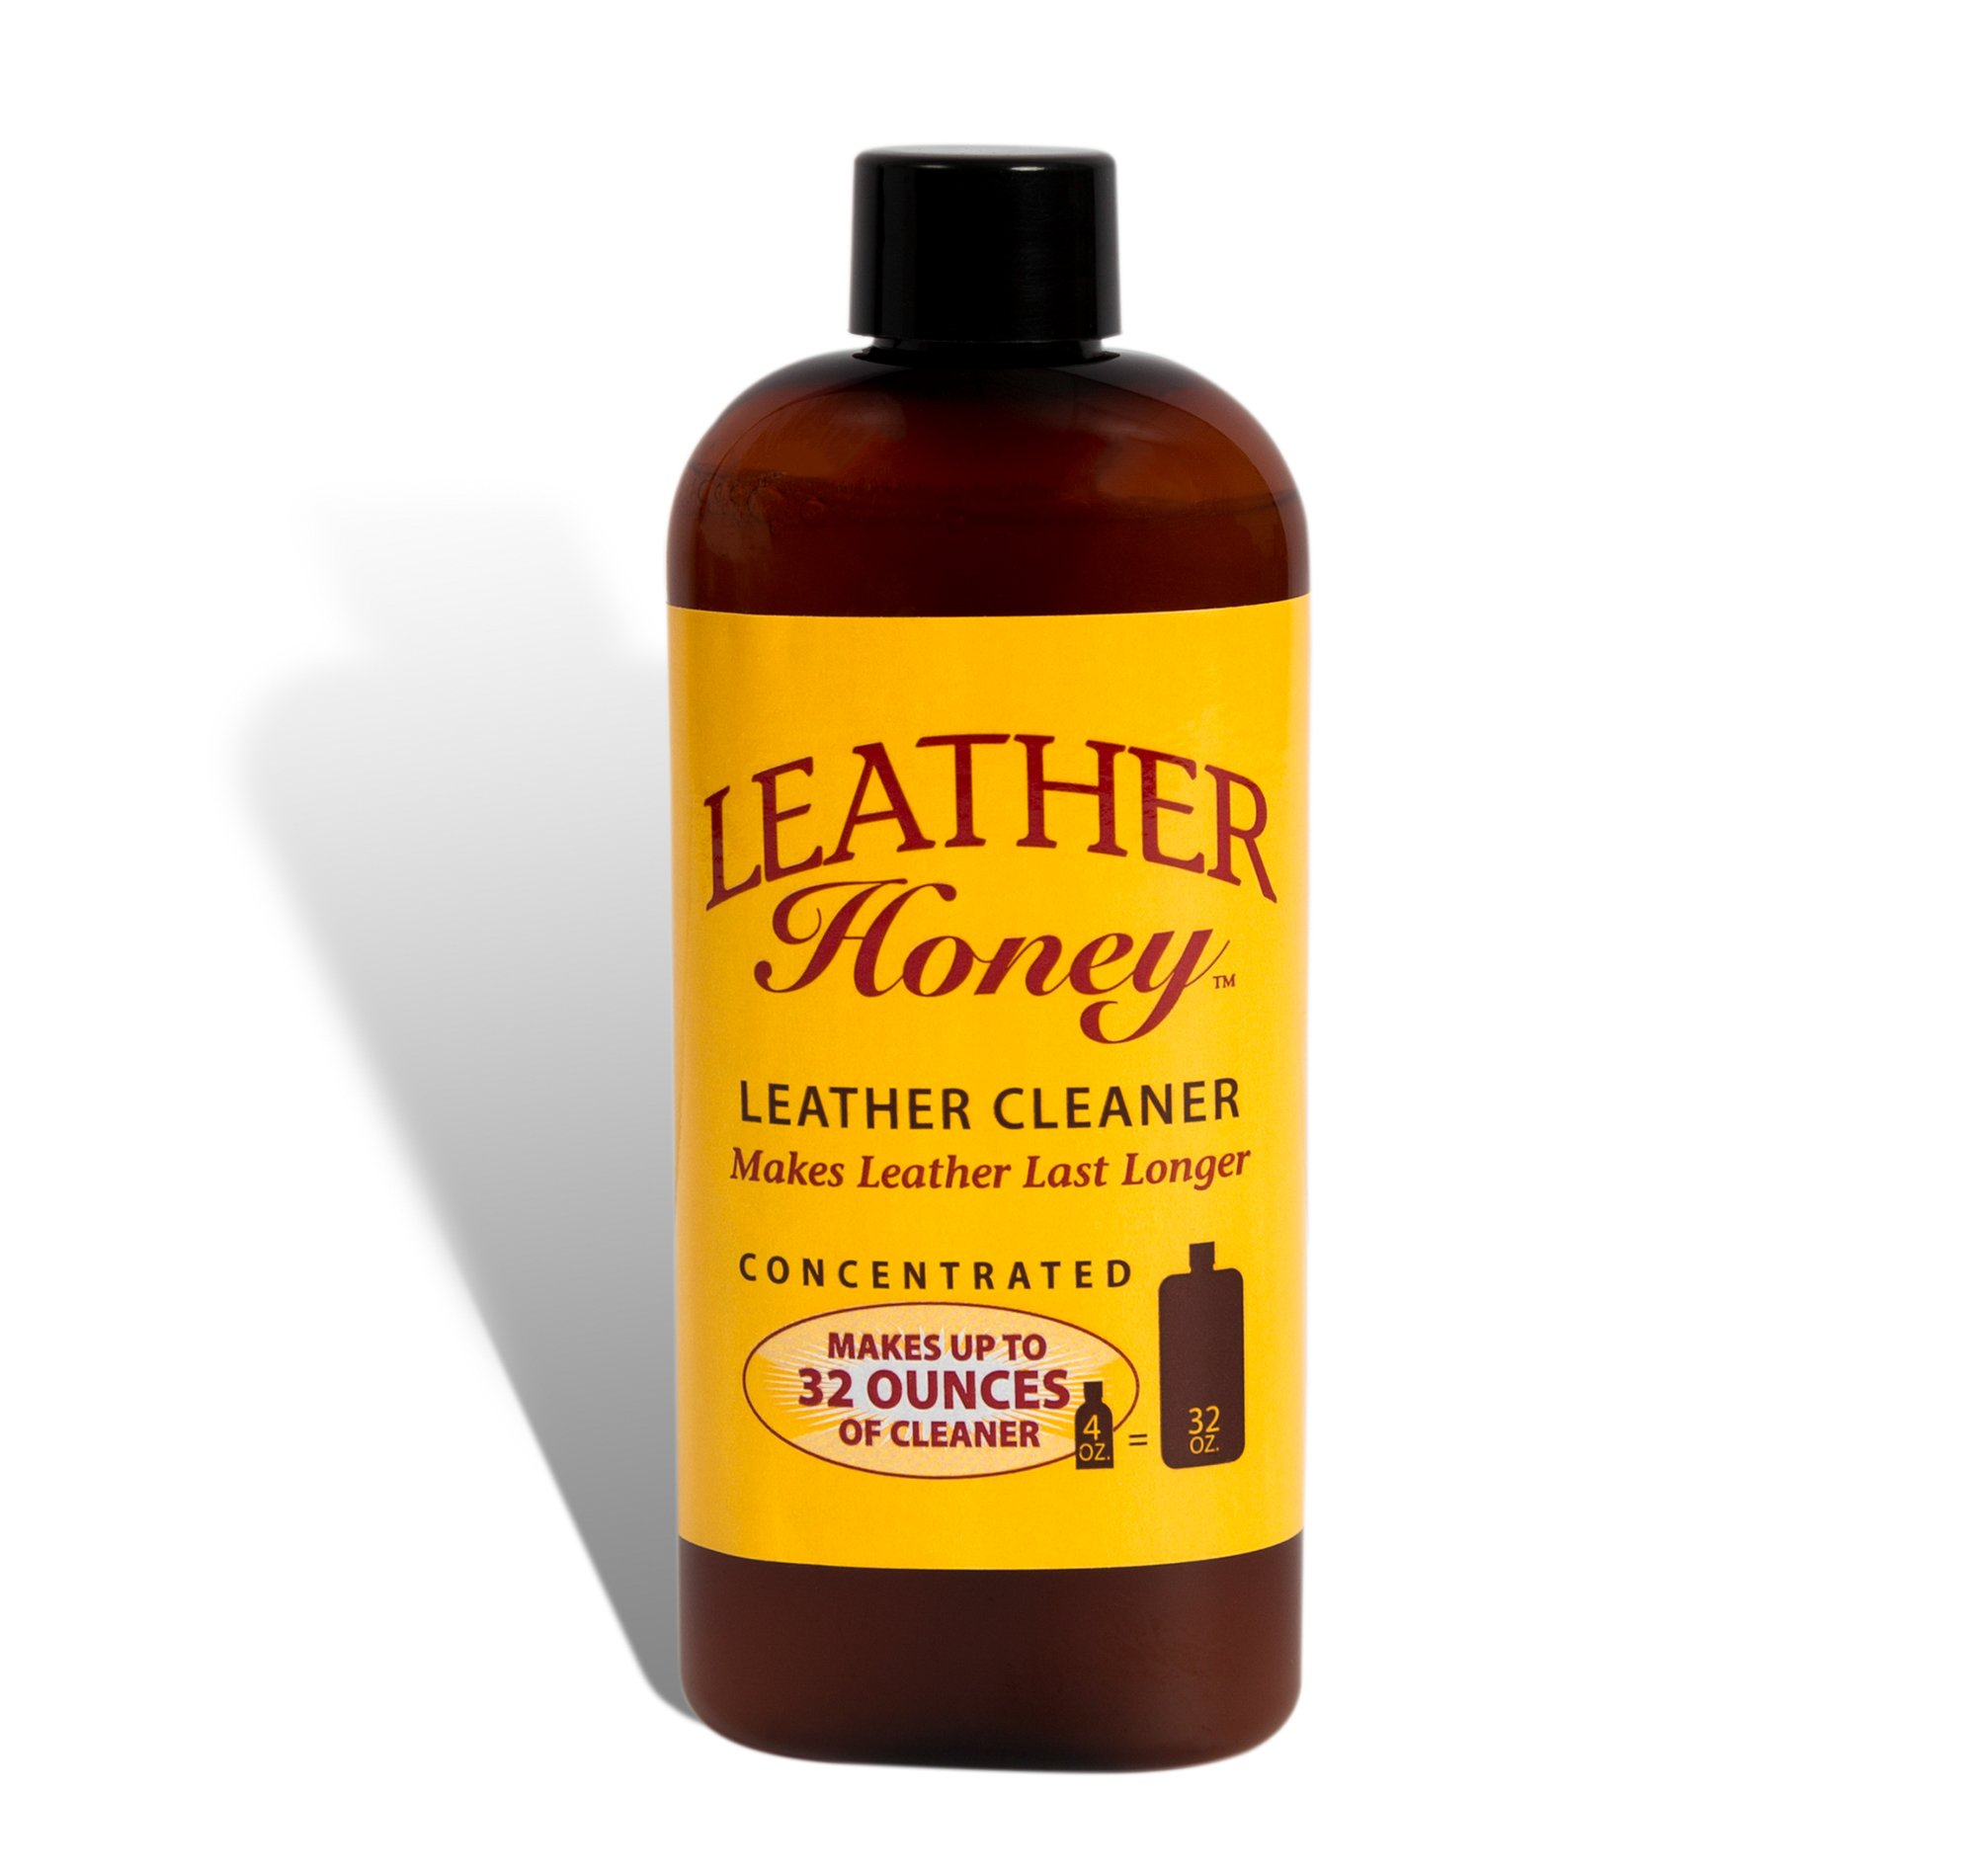 Leather Honey Leather Cleaner The Best Leather Cleaner for Vinyl and Leather Apparel, Furniture, Auto Interior, Shoes and Accessories. Concentrated Formula Makes 32 Ounces When Diluted! by Leather Honey